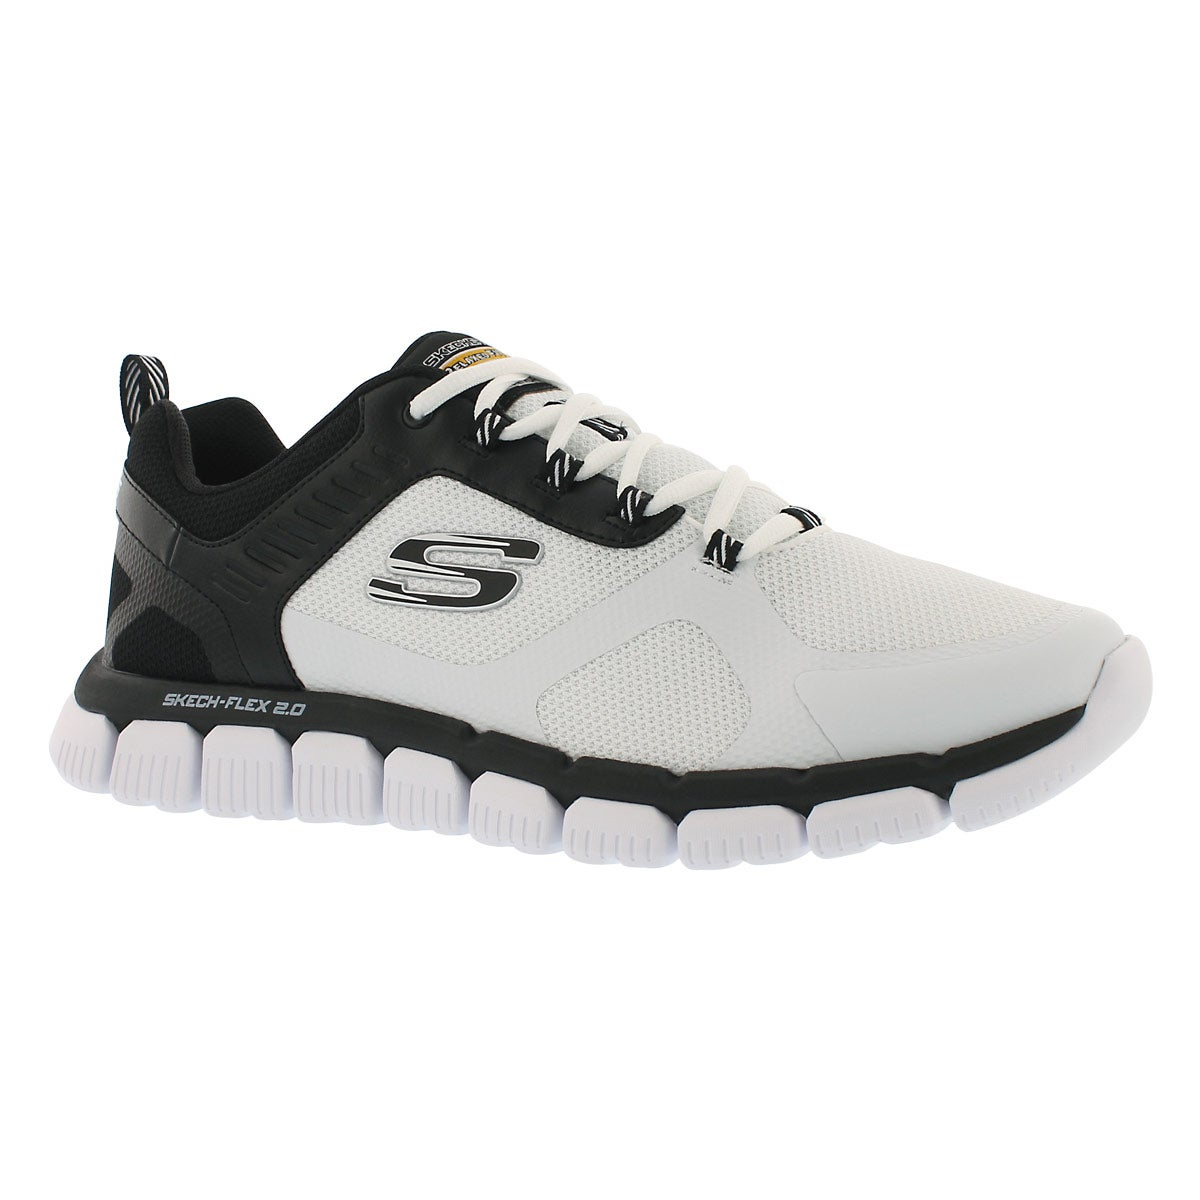 skechers athletic shoes men